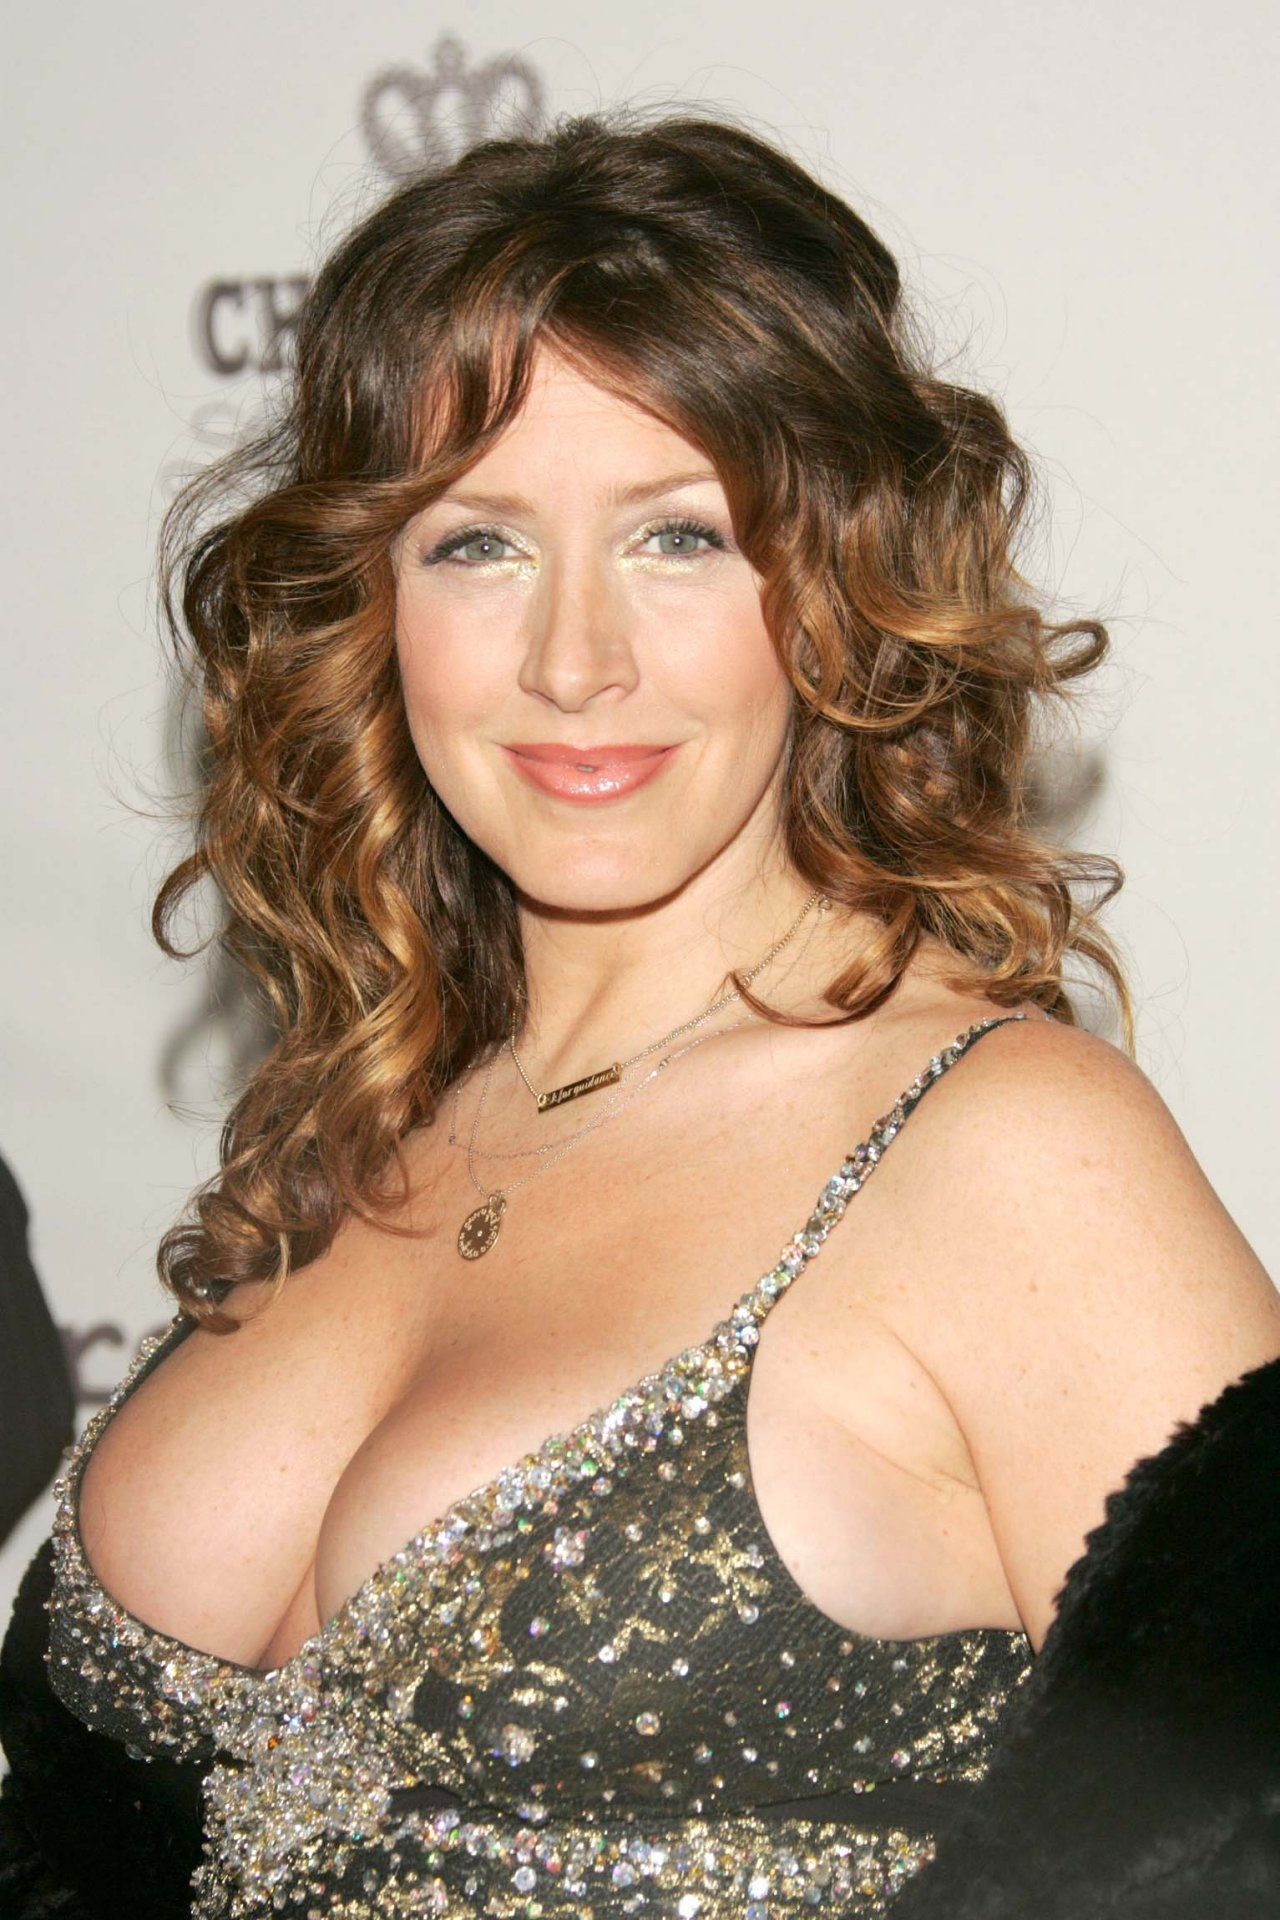 See Thru Tv Joely Fisher See Thru Joely Fisher Nude Ass He Was Tucked Behind